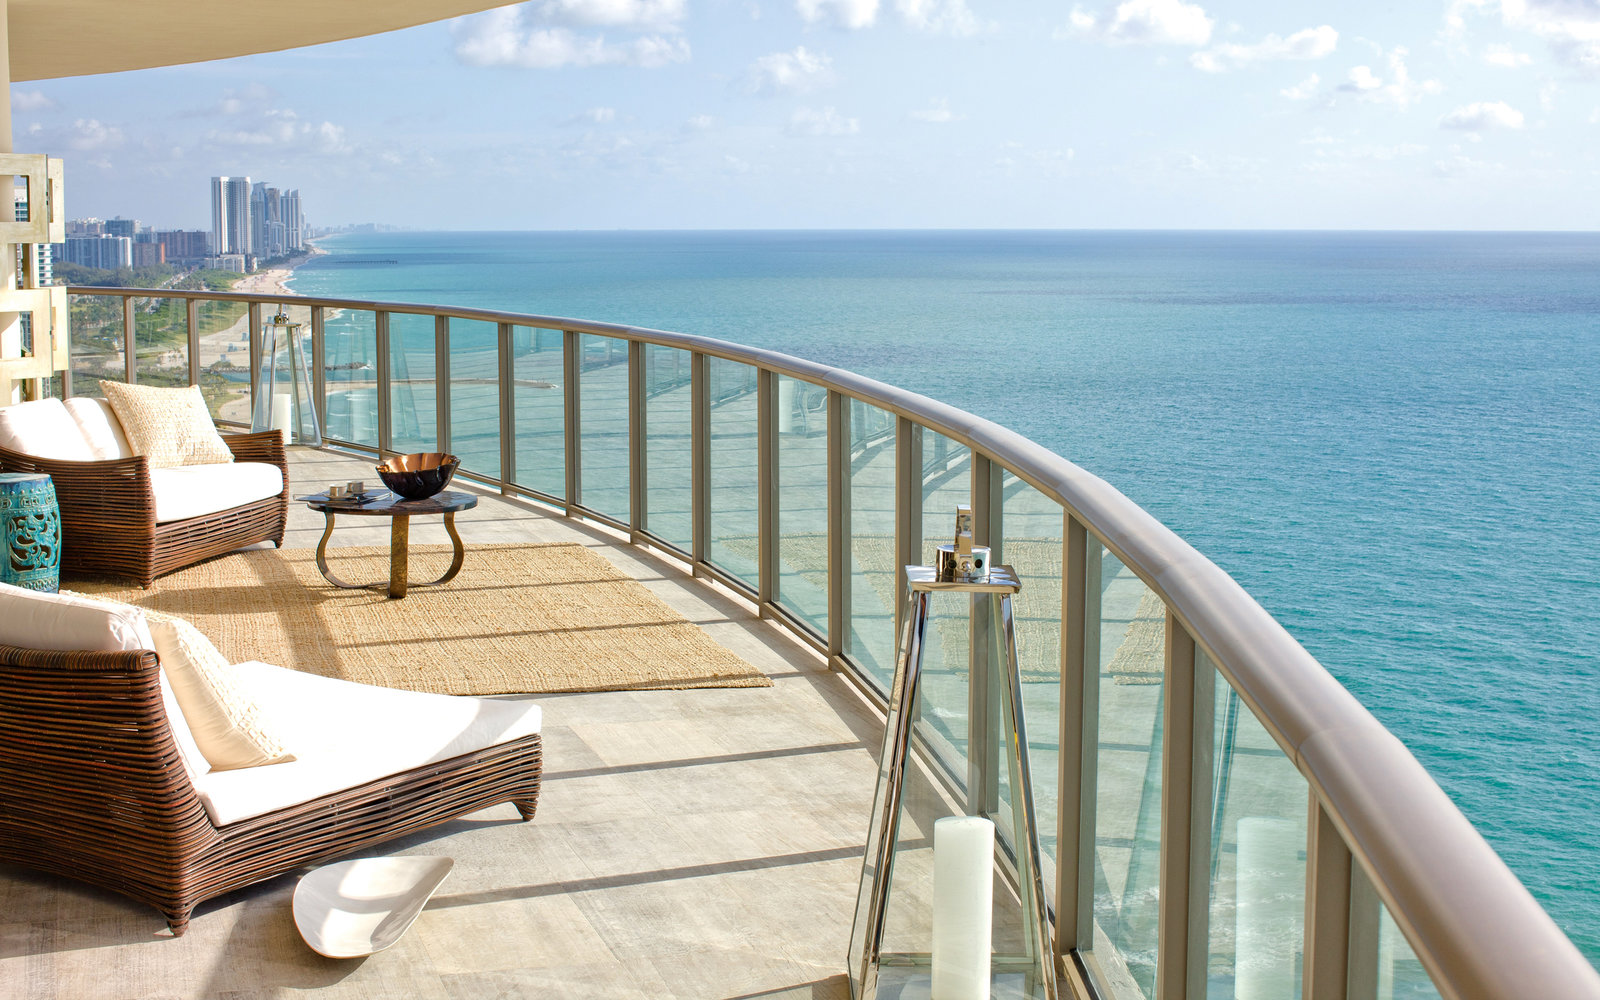 No. 7: St. Regis Bal Harbour Resort & Residences, Bal Harbour